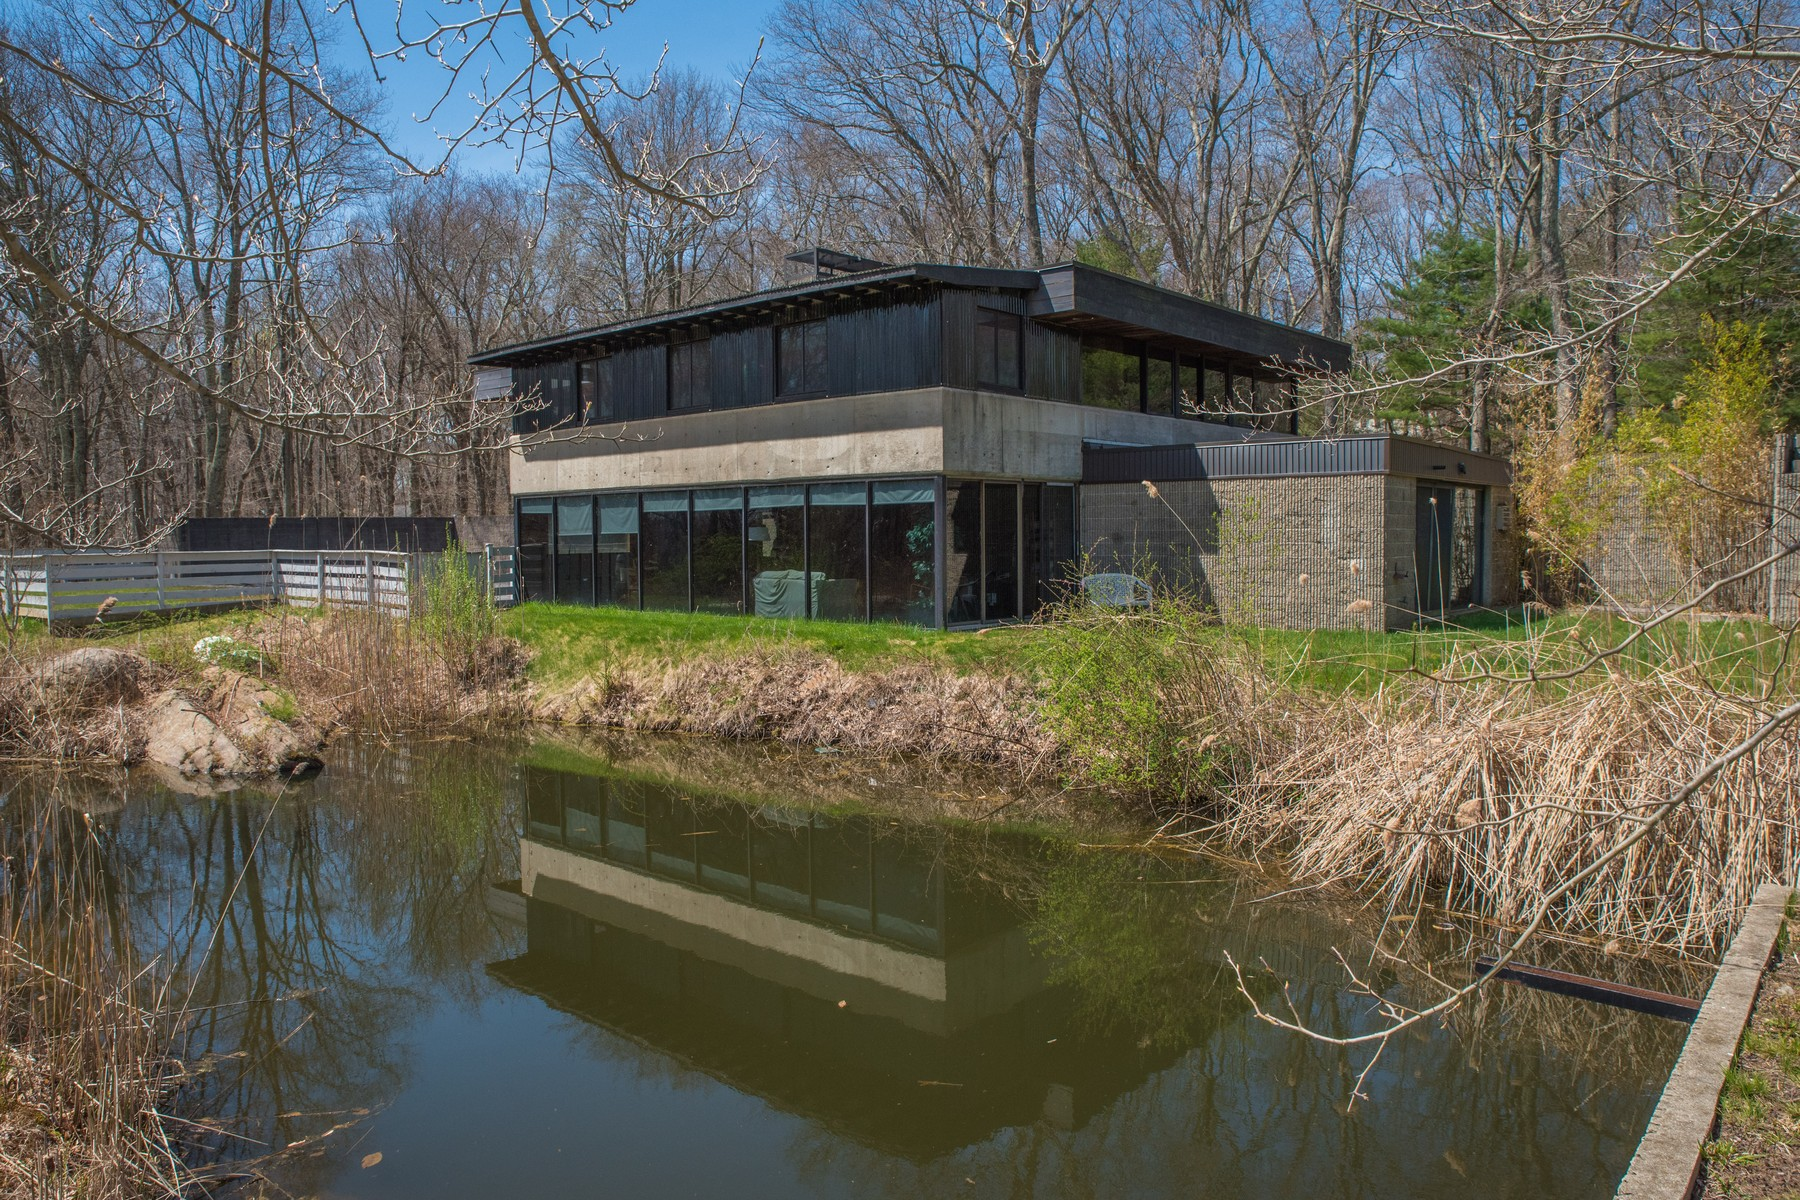 独户住宅 为 销售 在 Unique contemporary listed on the Connecticut Landmark homes list 3 Bill Hill Rd #b 旧莱姆, 康涅狄格州, 06371 美国